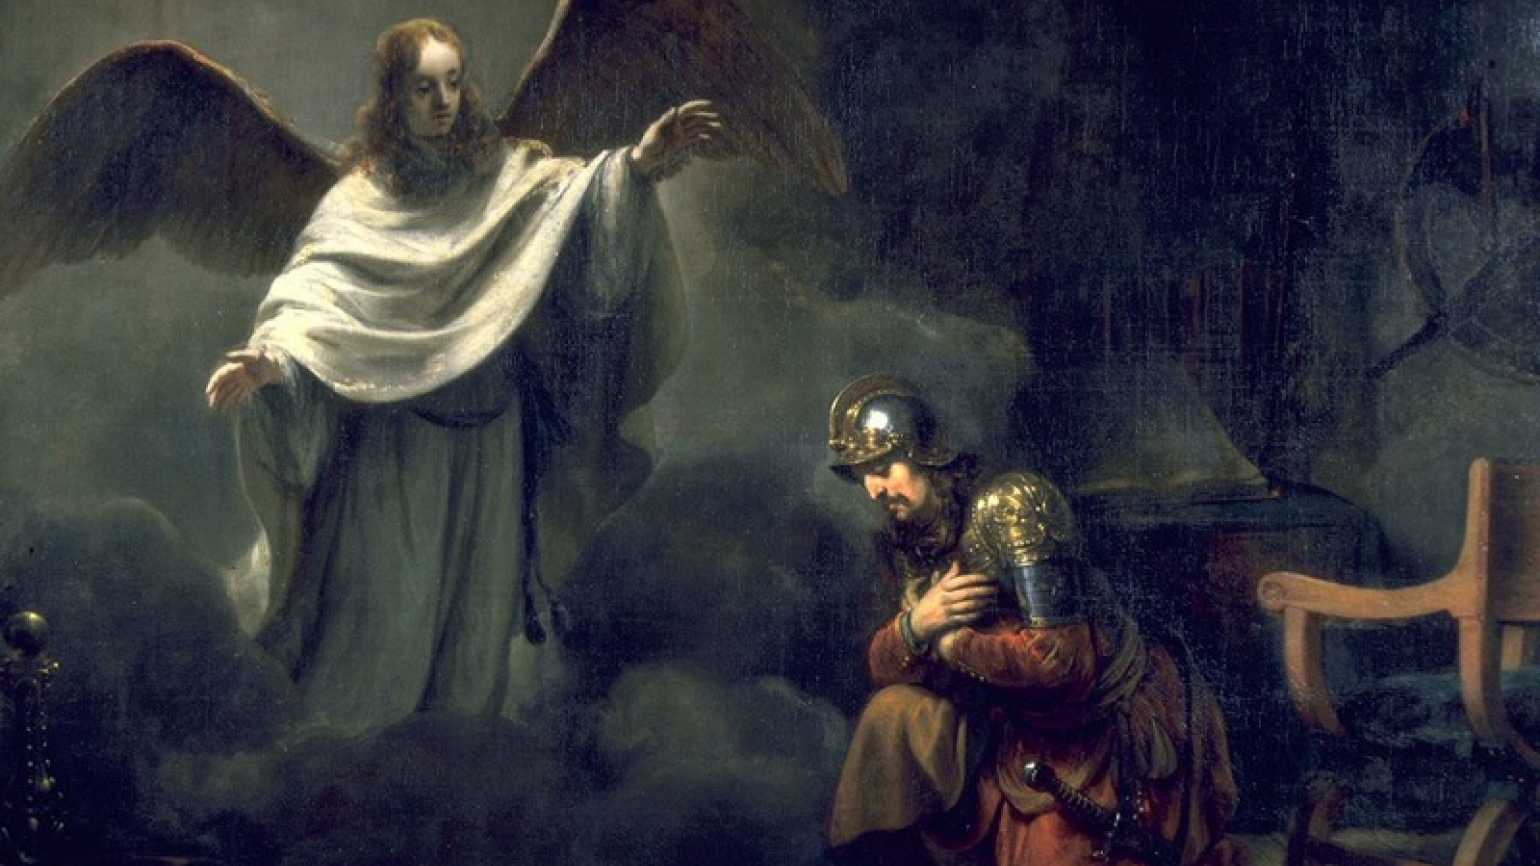 Cornelius being visited by an angel, Acts 10:1-3